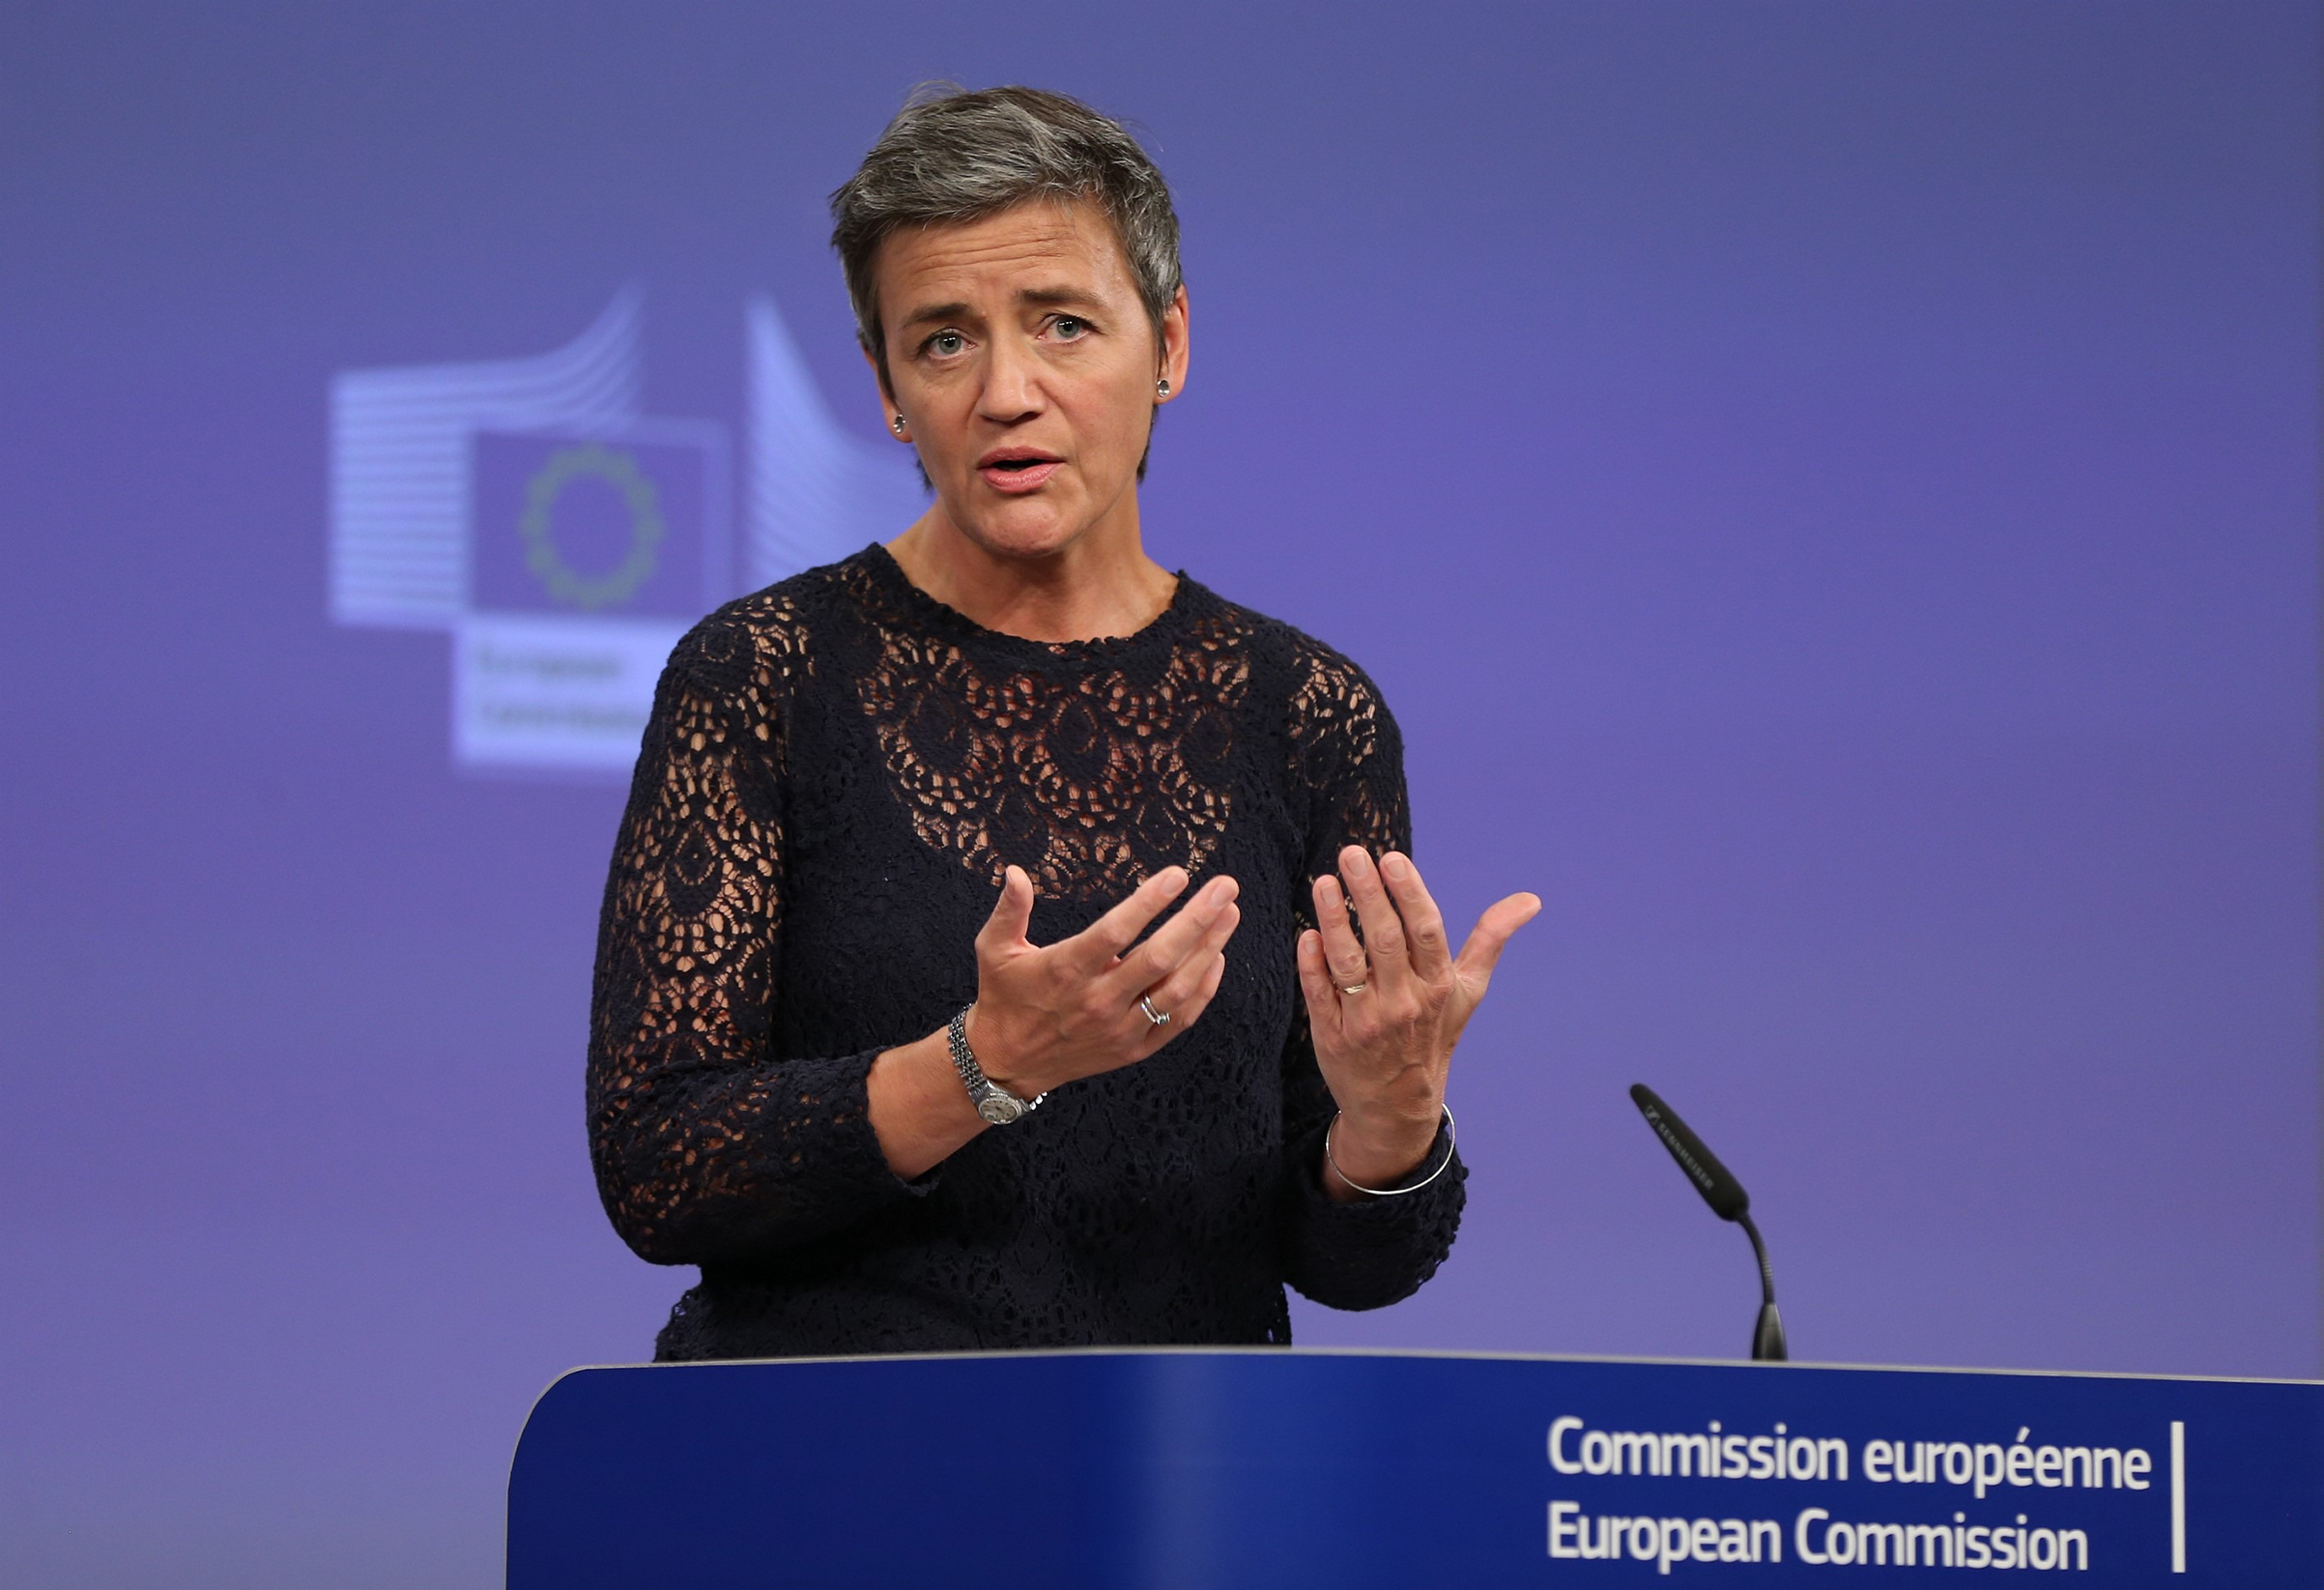 Vestager made headlines in 2016 for ruling Apple owed Ireland around $14.5billion in back taxes